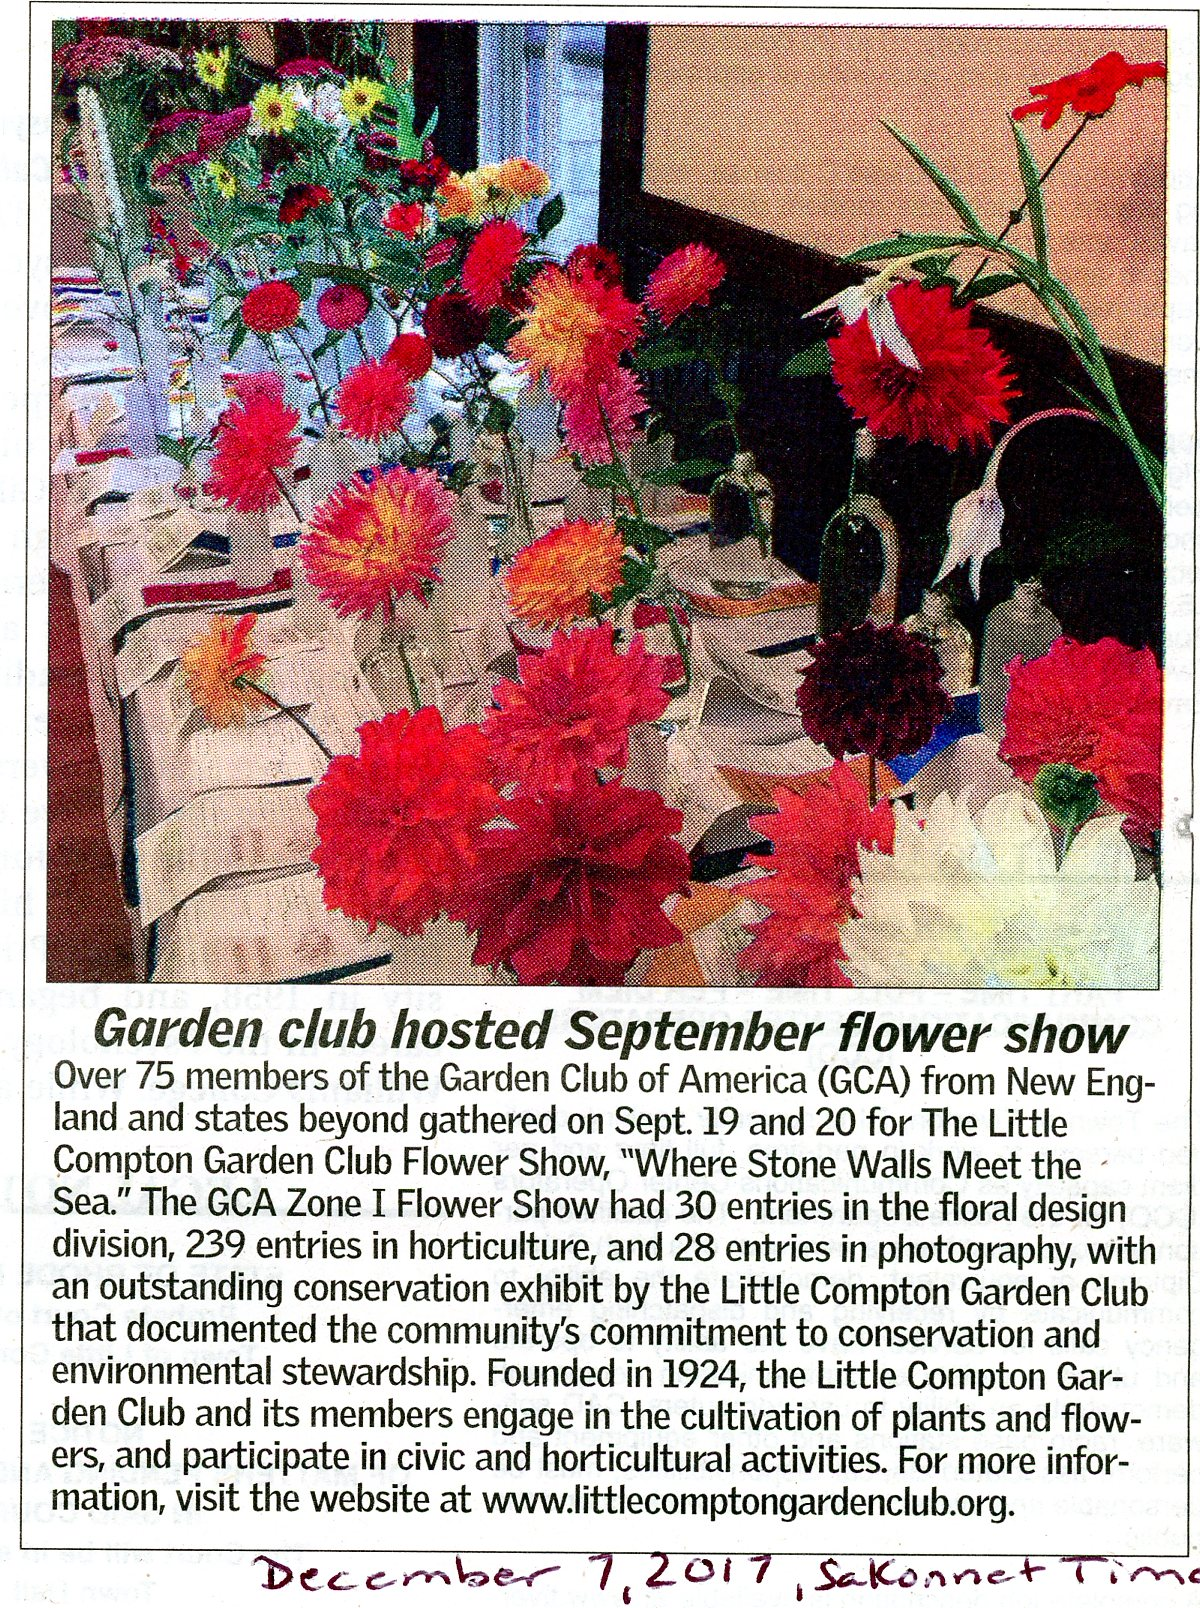 Sakonnet Times Article about Zone 1 Flower Show